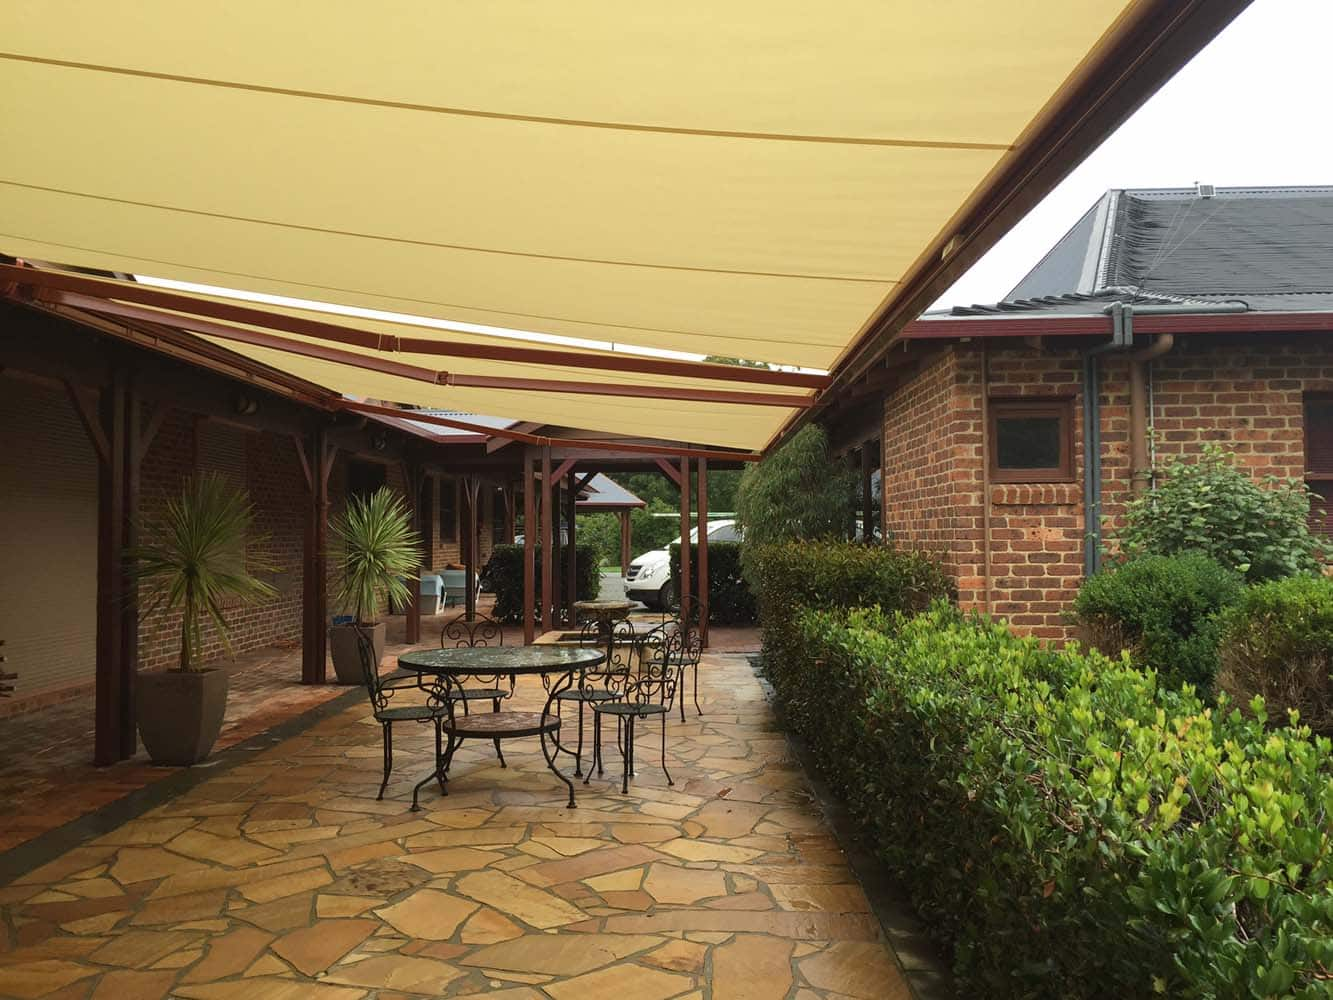 RETRACTABLE AWNING (11)